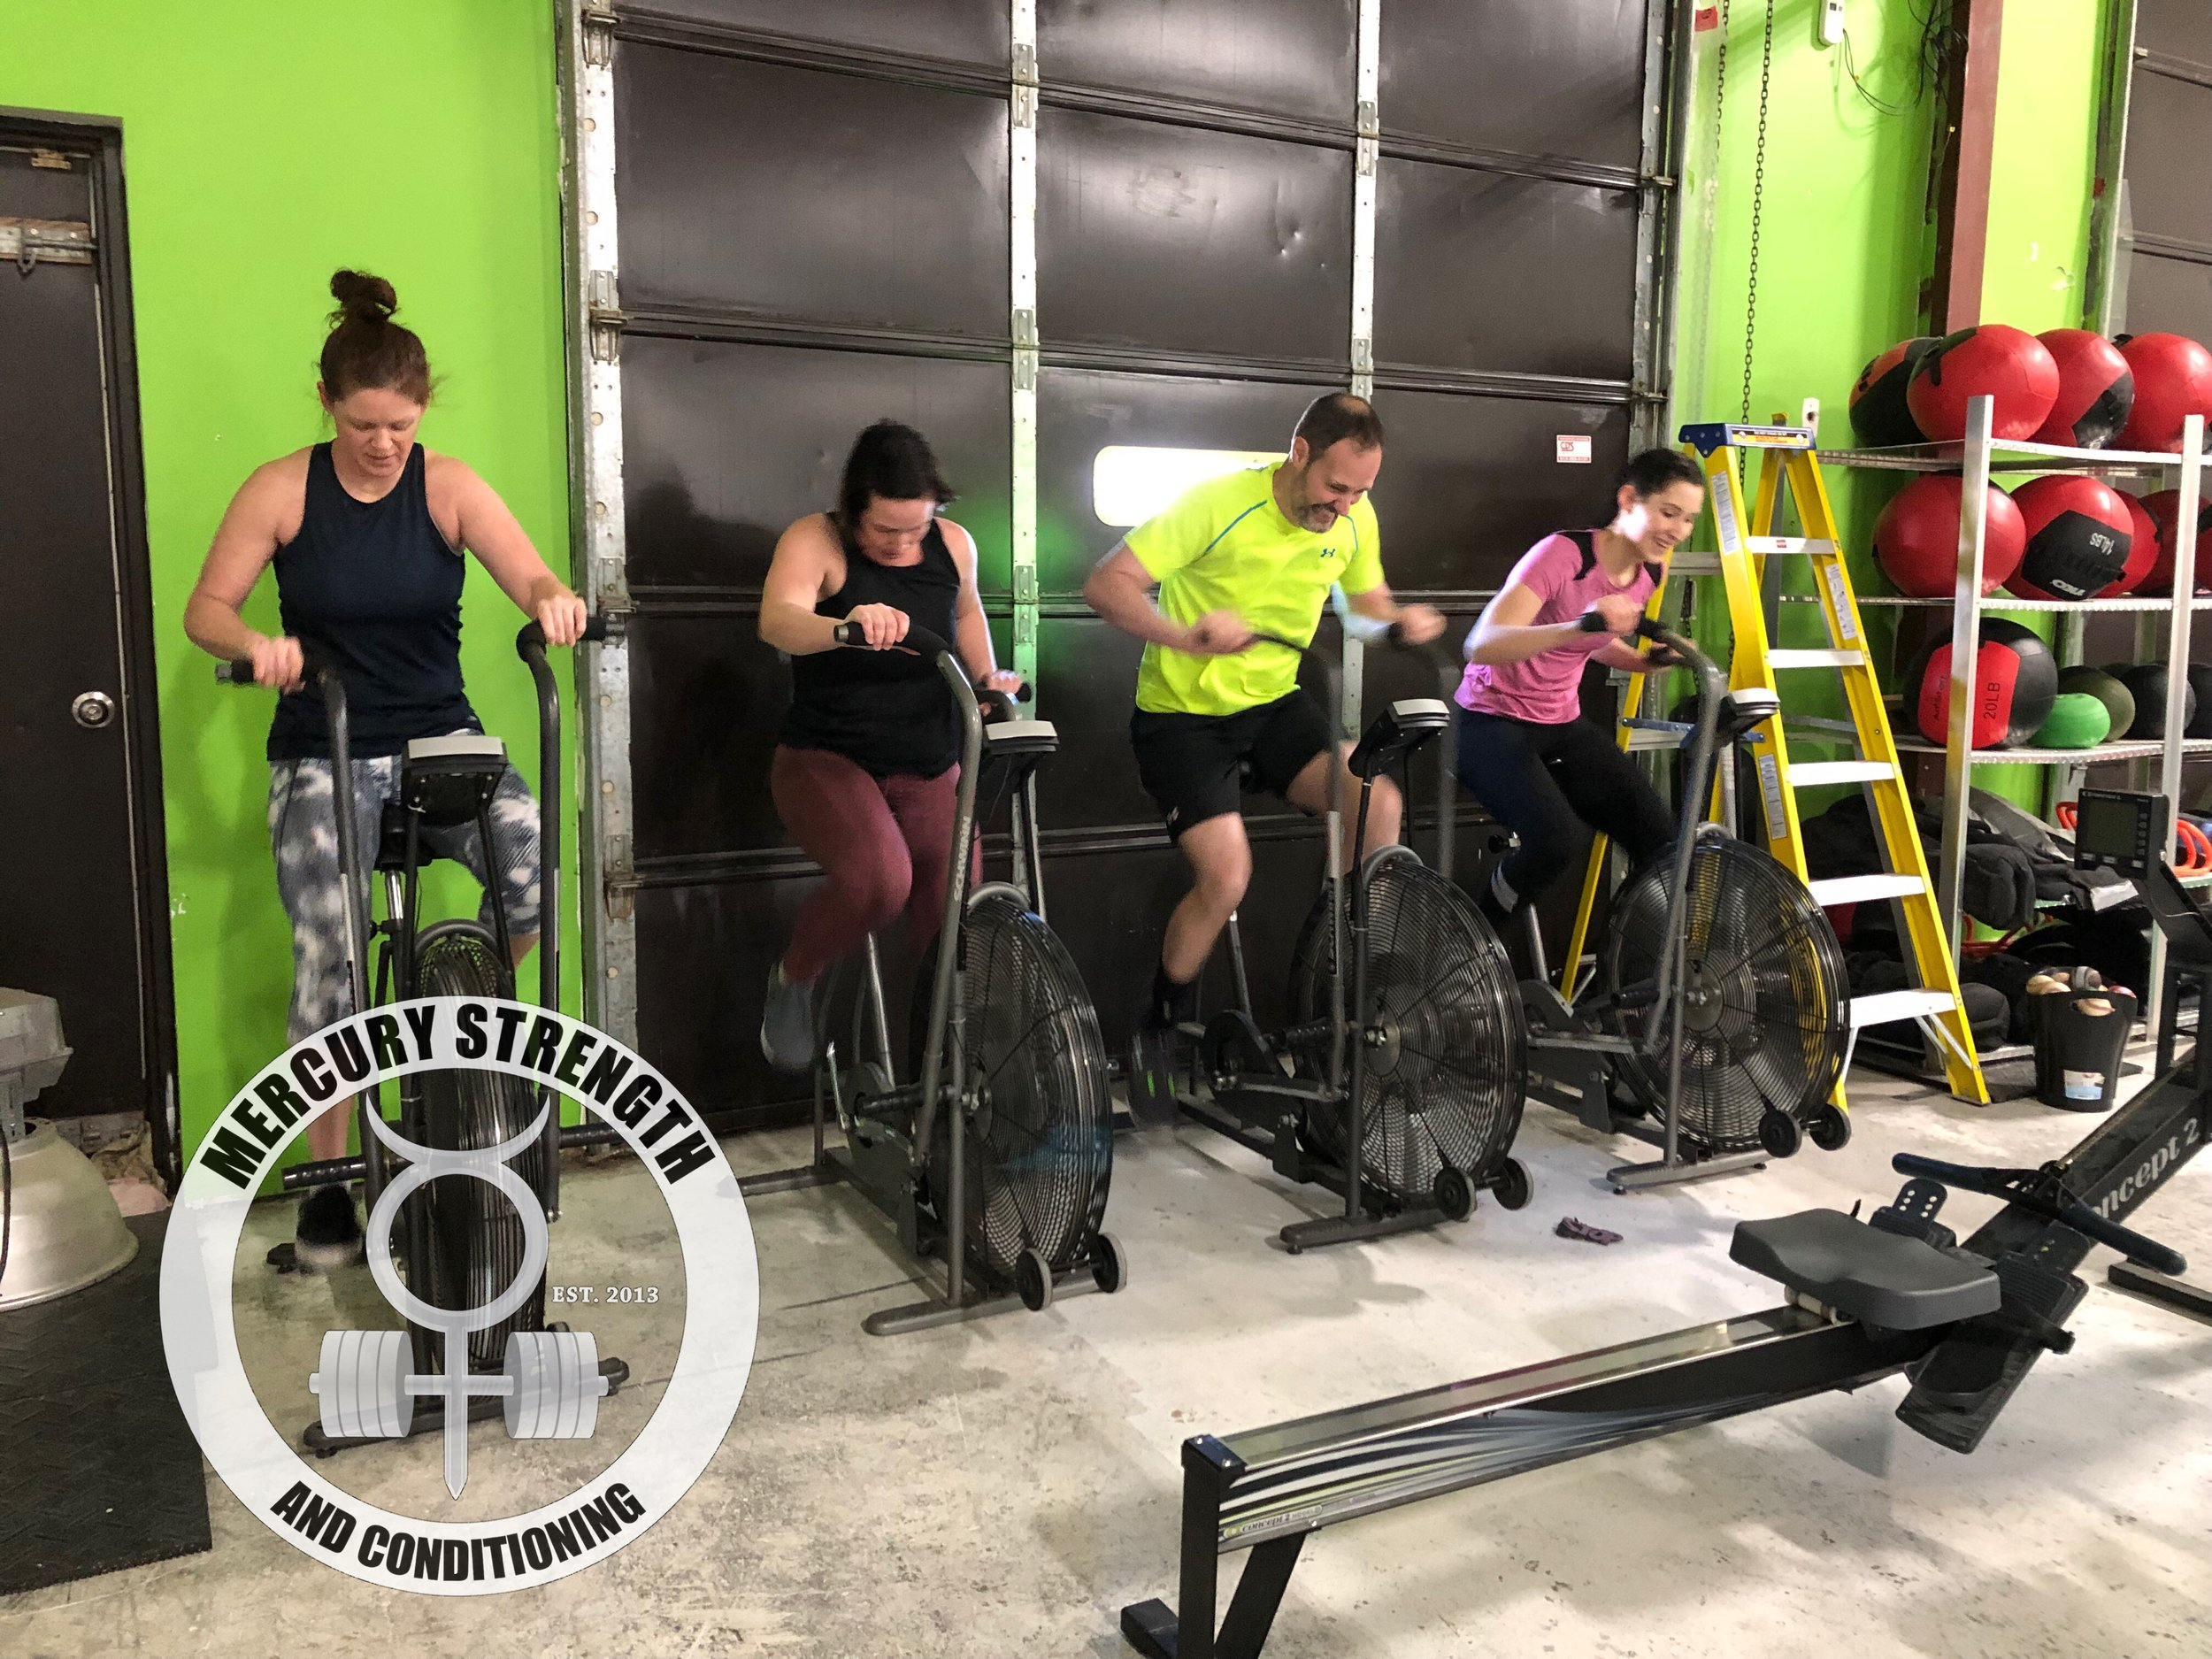 Cari, Lindsey, Andrew and Mel (I don't know why she's smiling on the air dyne) with some air dyne sprints during Saturday's workout.